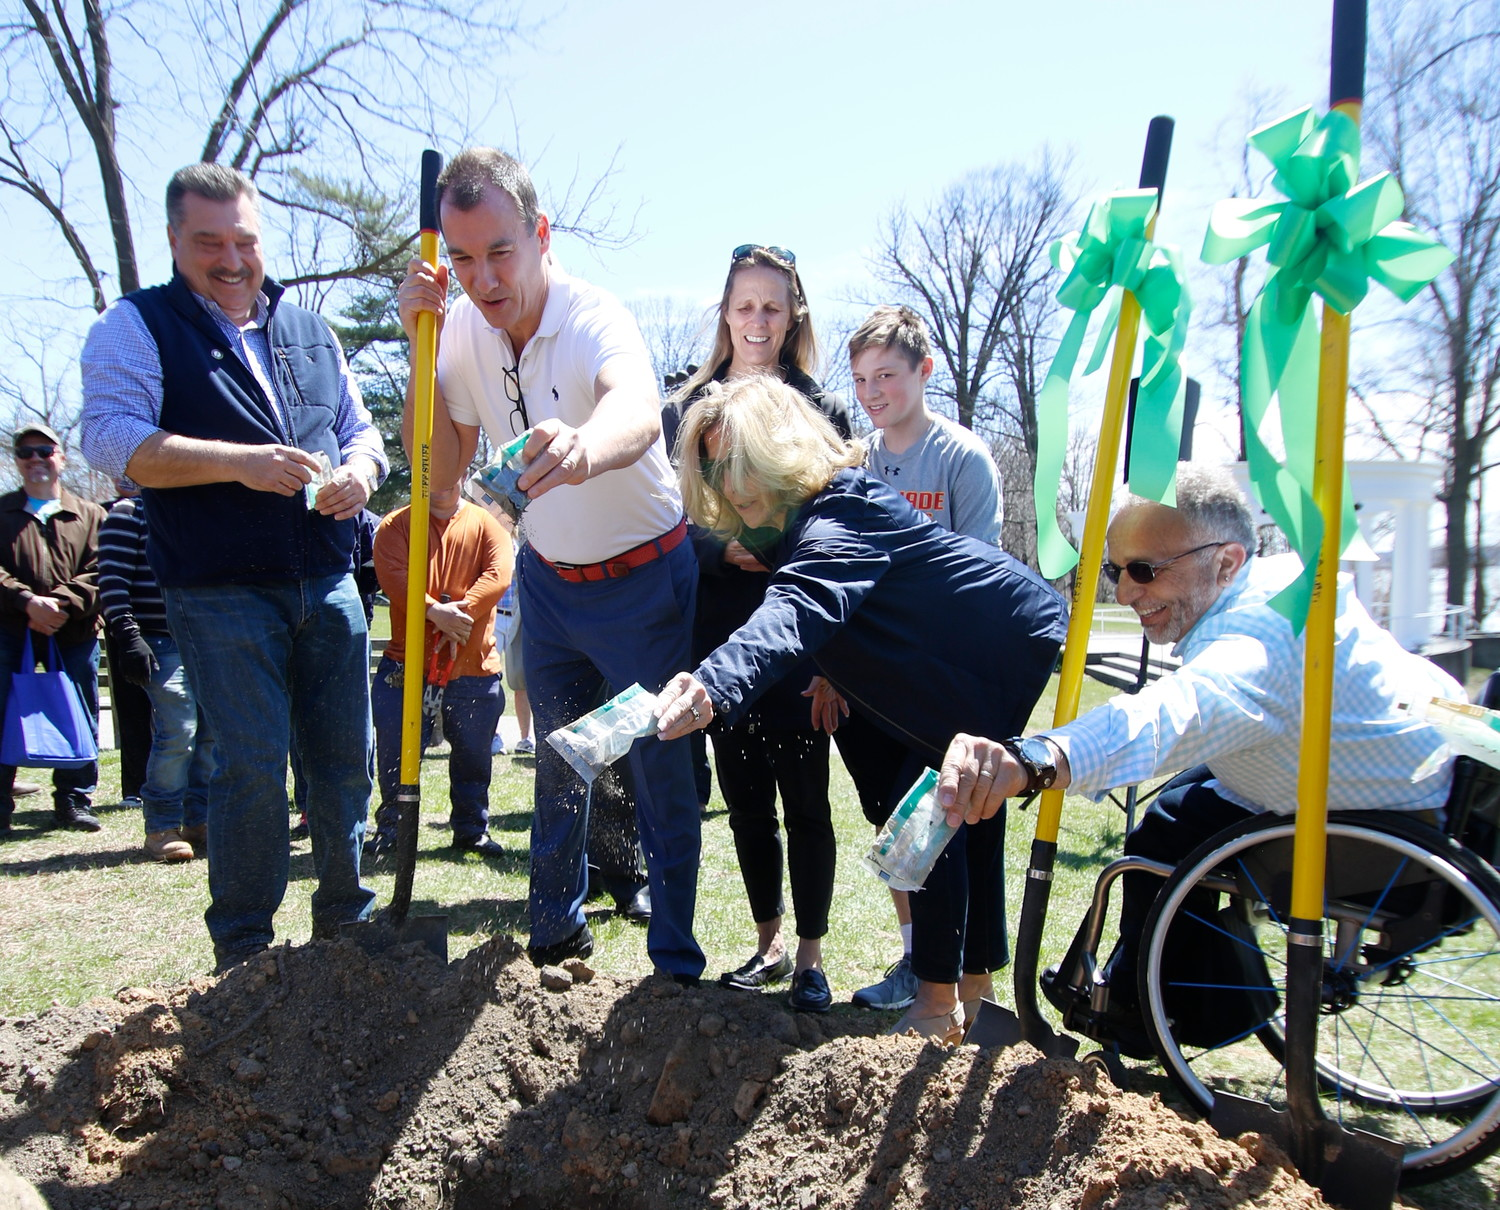 """We're politicians — we're all full of fertilizer!"" U.S. Rep. Tom Suozzi, second from left, joked as he, Mayor Tim Tenke, far left, and council members Pamela Panzenbeck and Michael Zangari sprinkled tree food into the hole where the sapling would soon be planted. Suozzi's wife, Helene, and son Michael watched from behind."